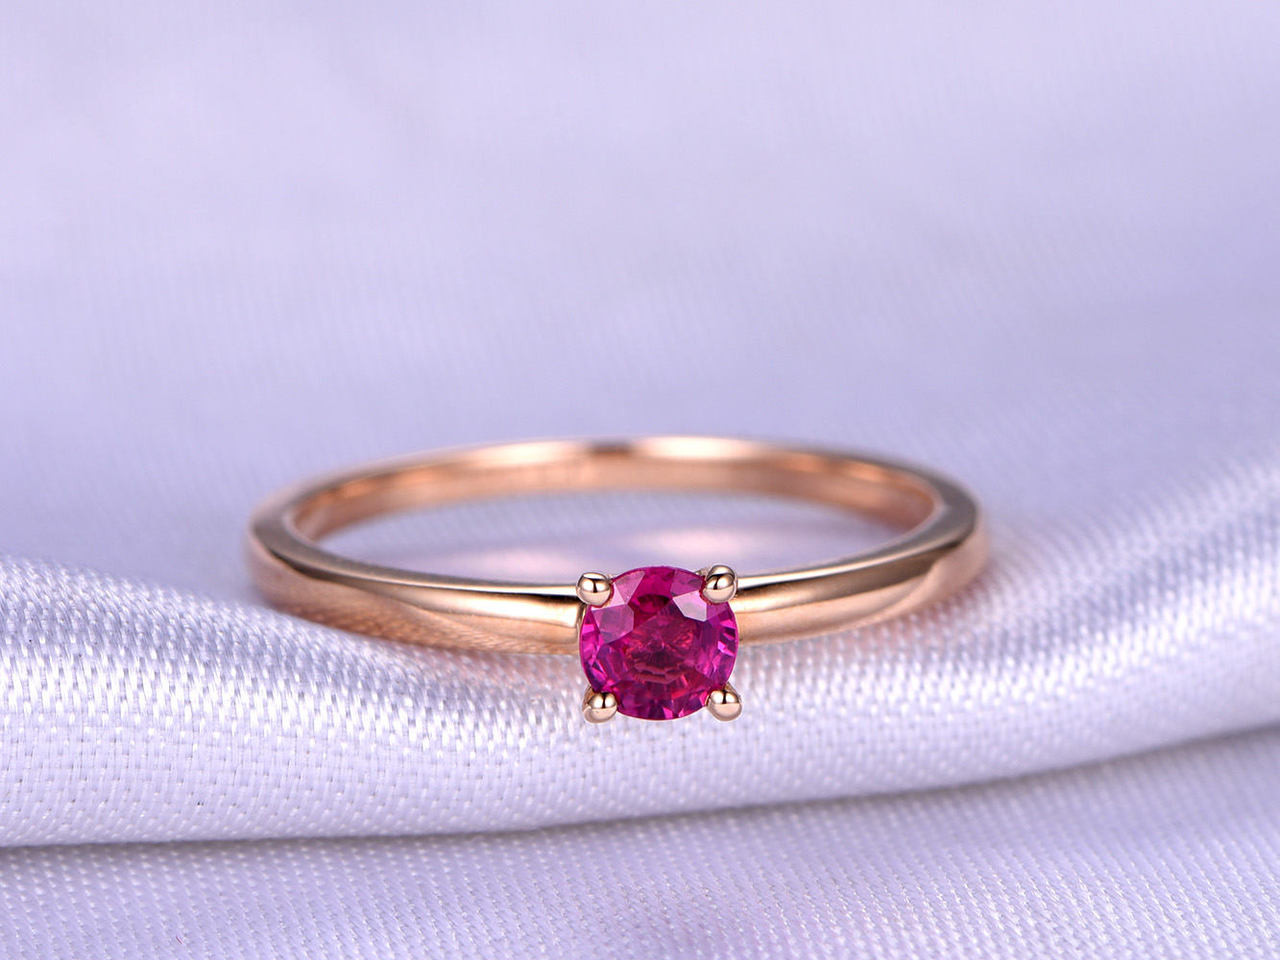 ruby ring 4mm round cut natural ruby engagement ring plain. Black Bedroom Furniture Sets. Home Design Ideas